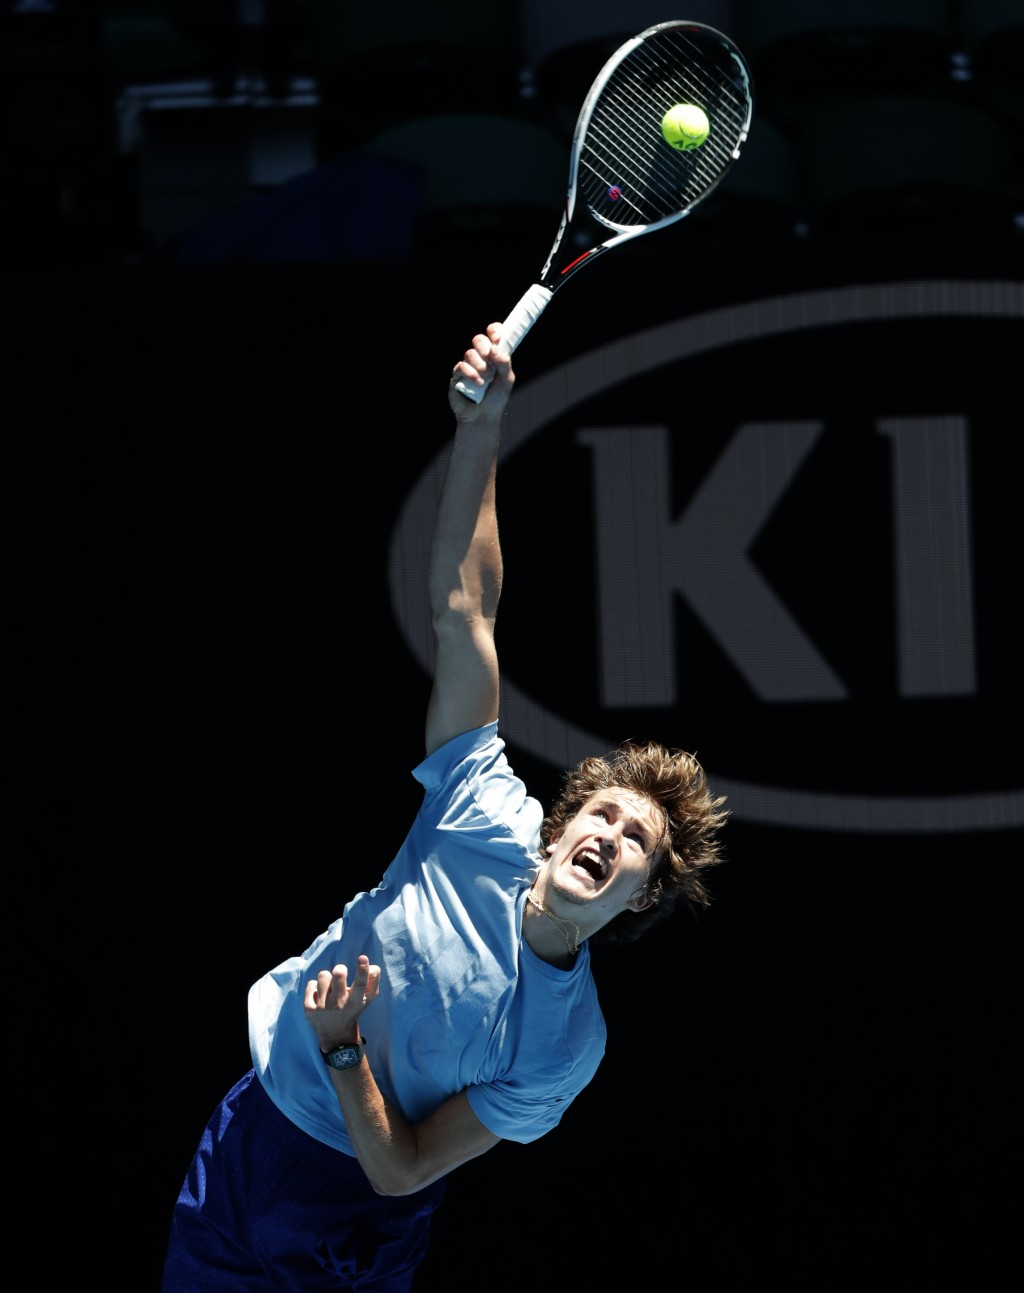 Germany's Alexander Zverev serves during a practice session ahead of the Australian Open tennis championships in Melbourne, Australia, Sunday, Jan. 14